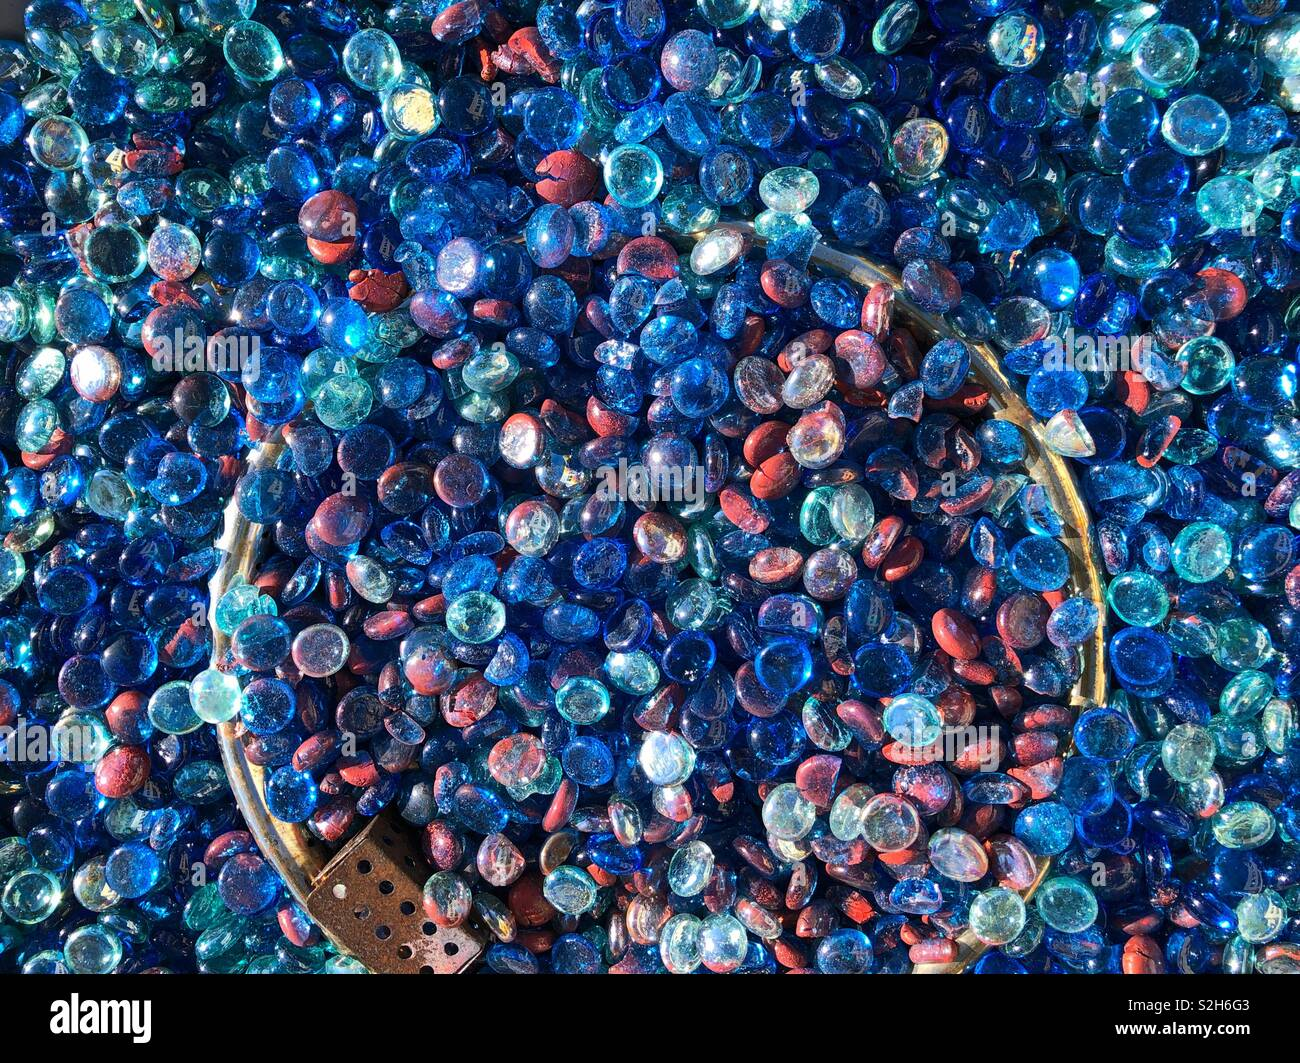 An abundance of colored glass chips - Stock Image